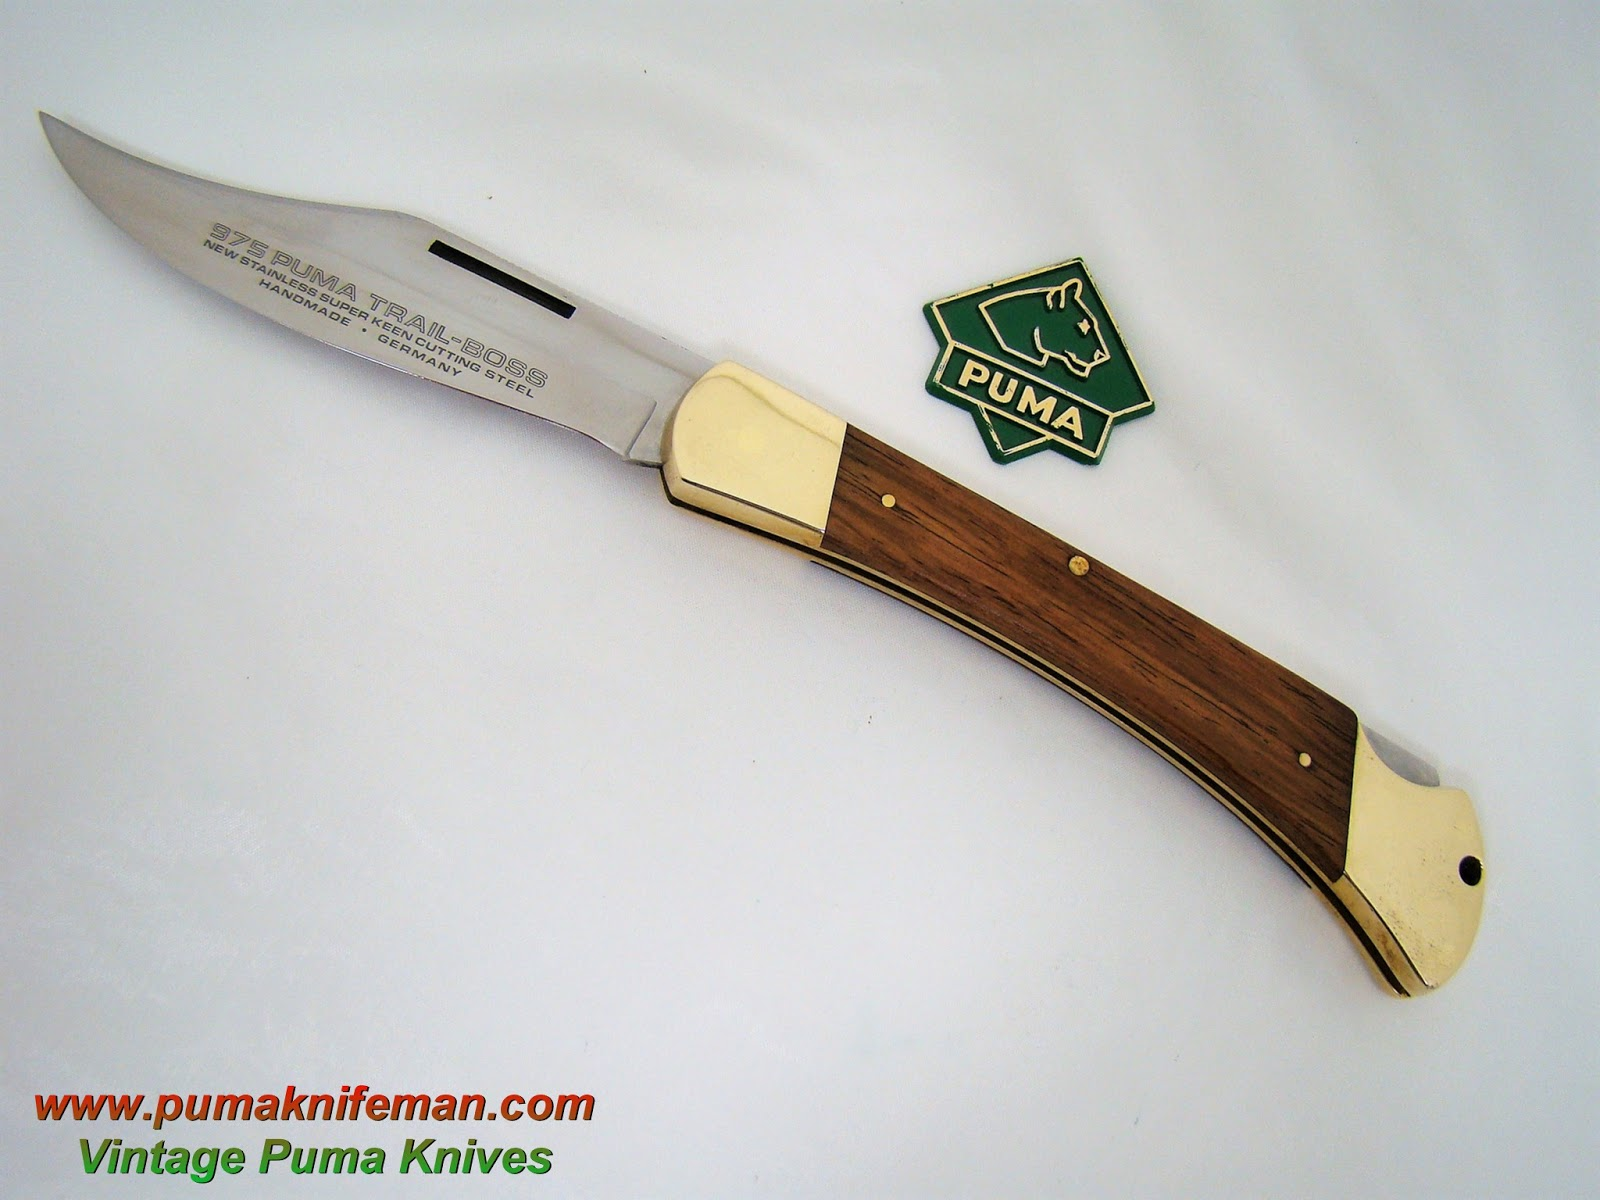 Dating puma knife